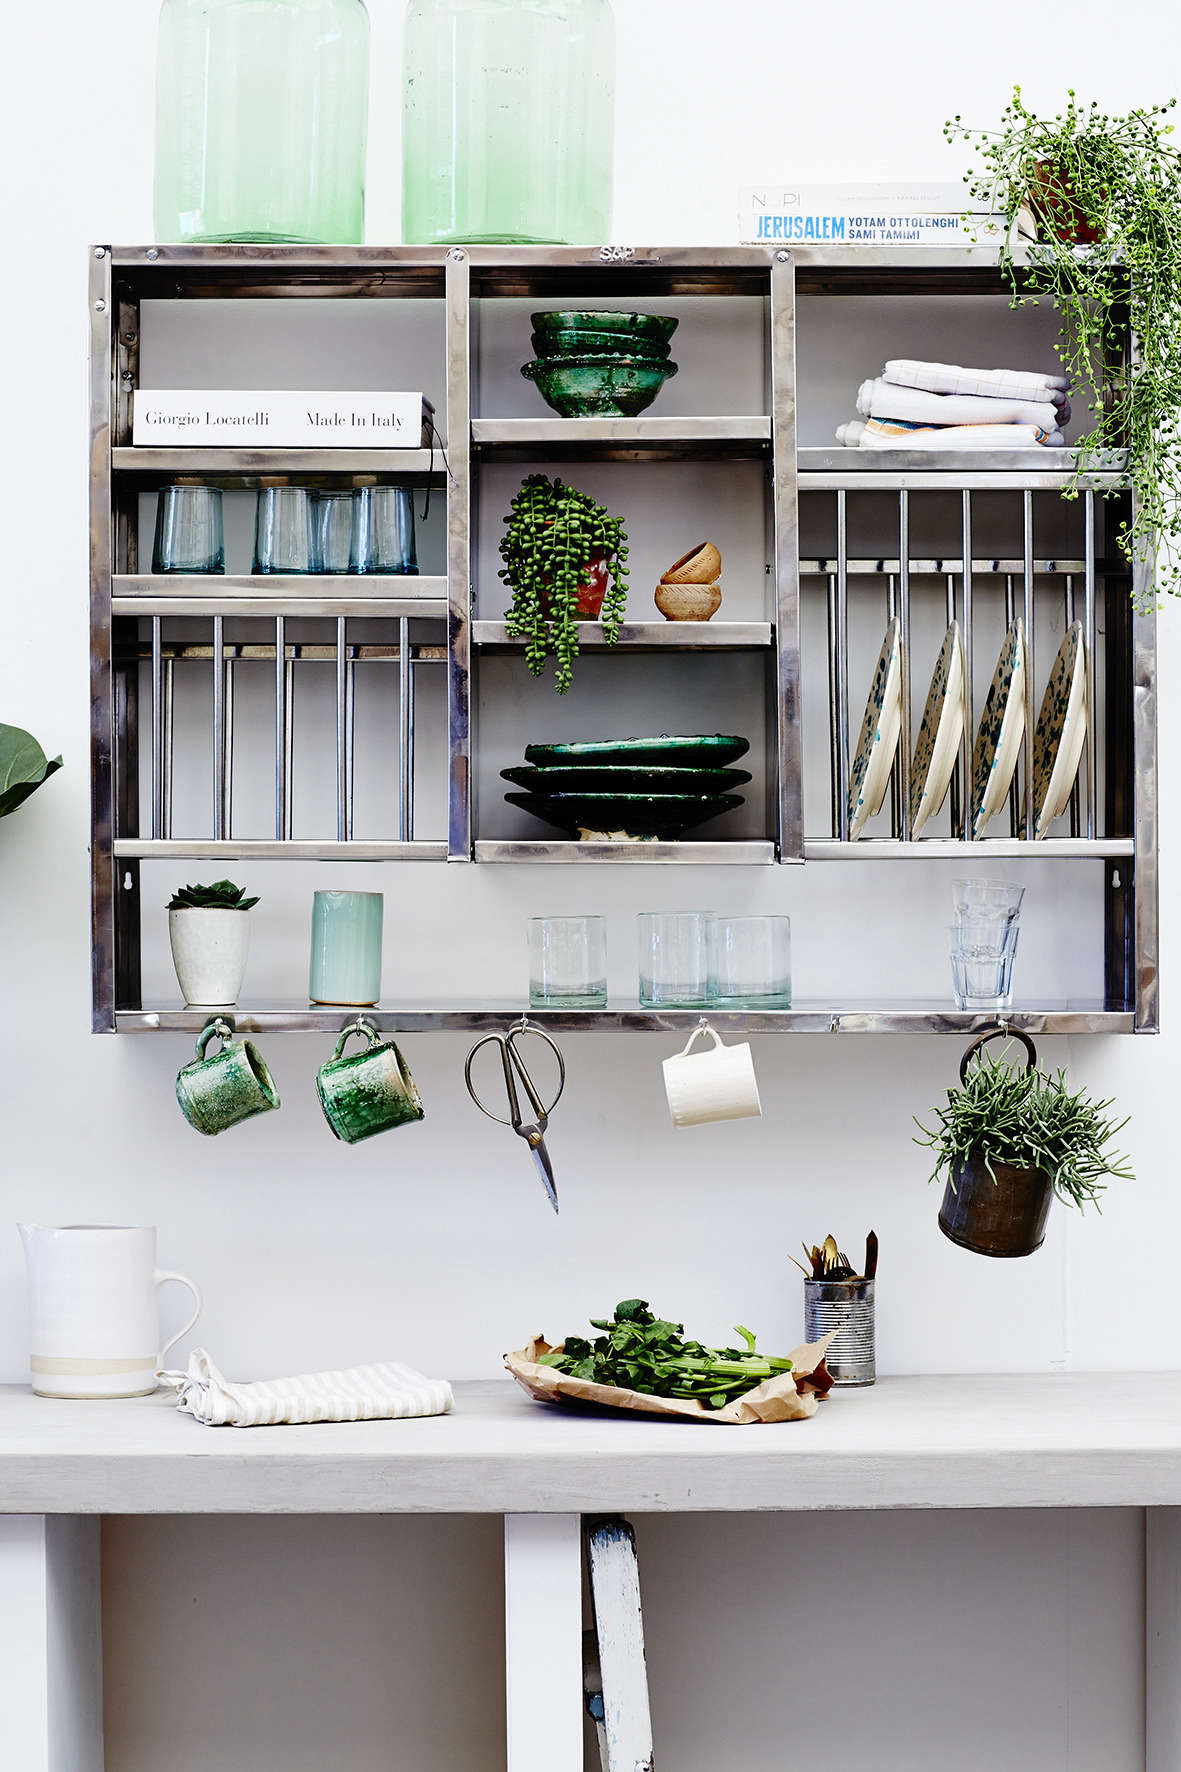 Indian stainless steel kitchen dish racks and shelves from ...